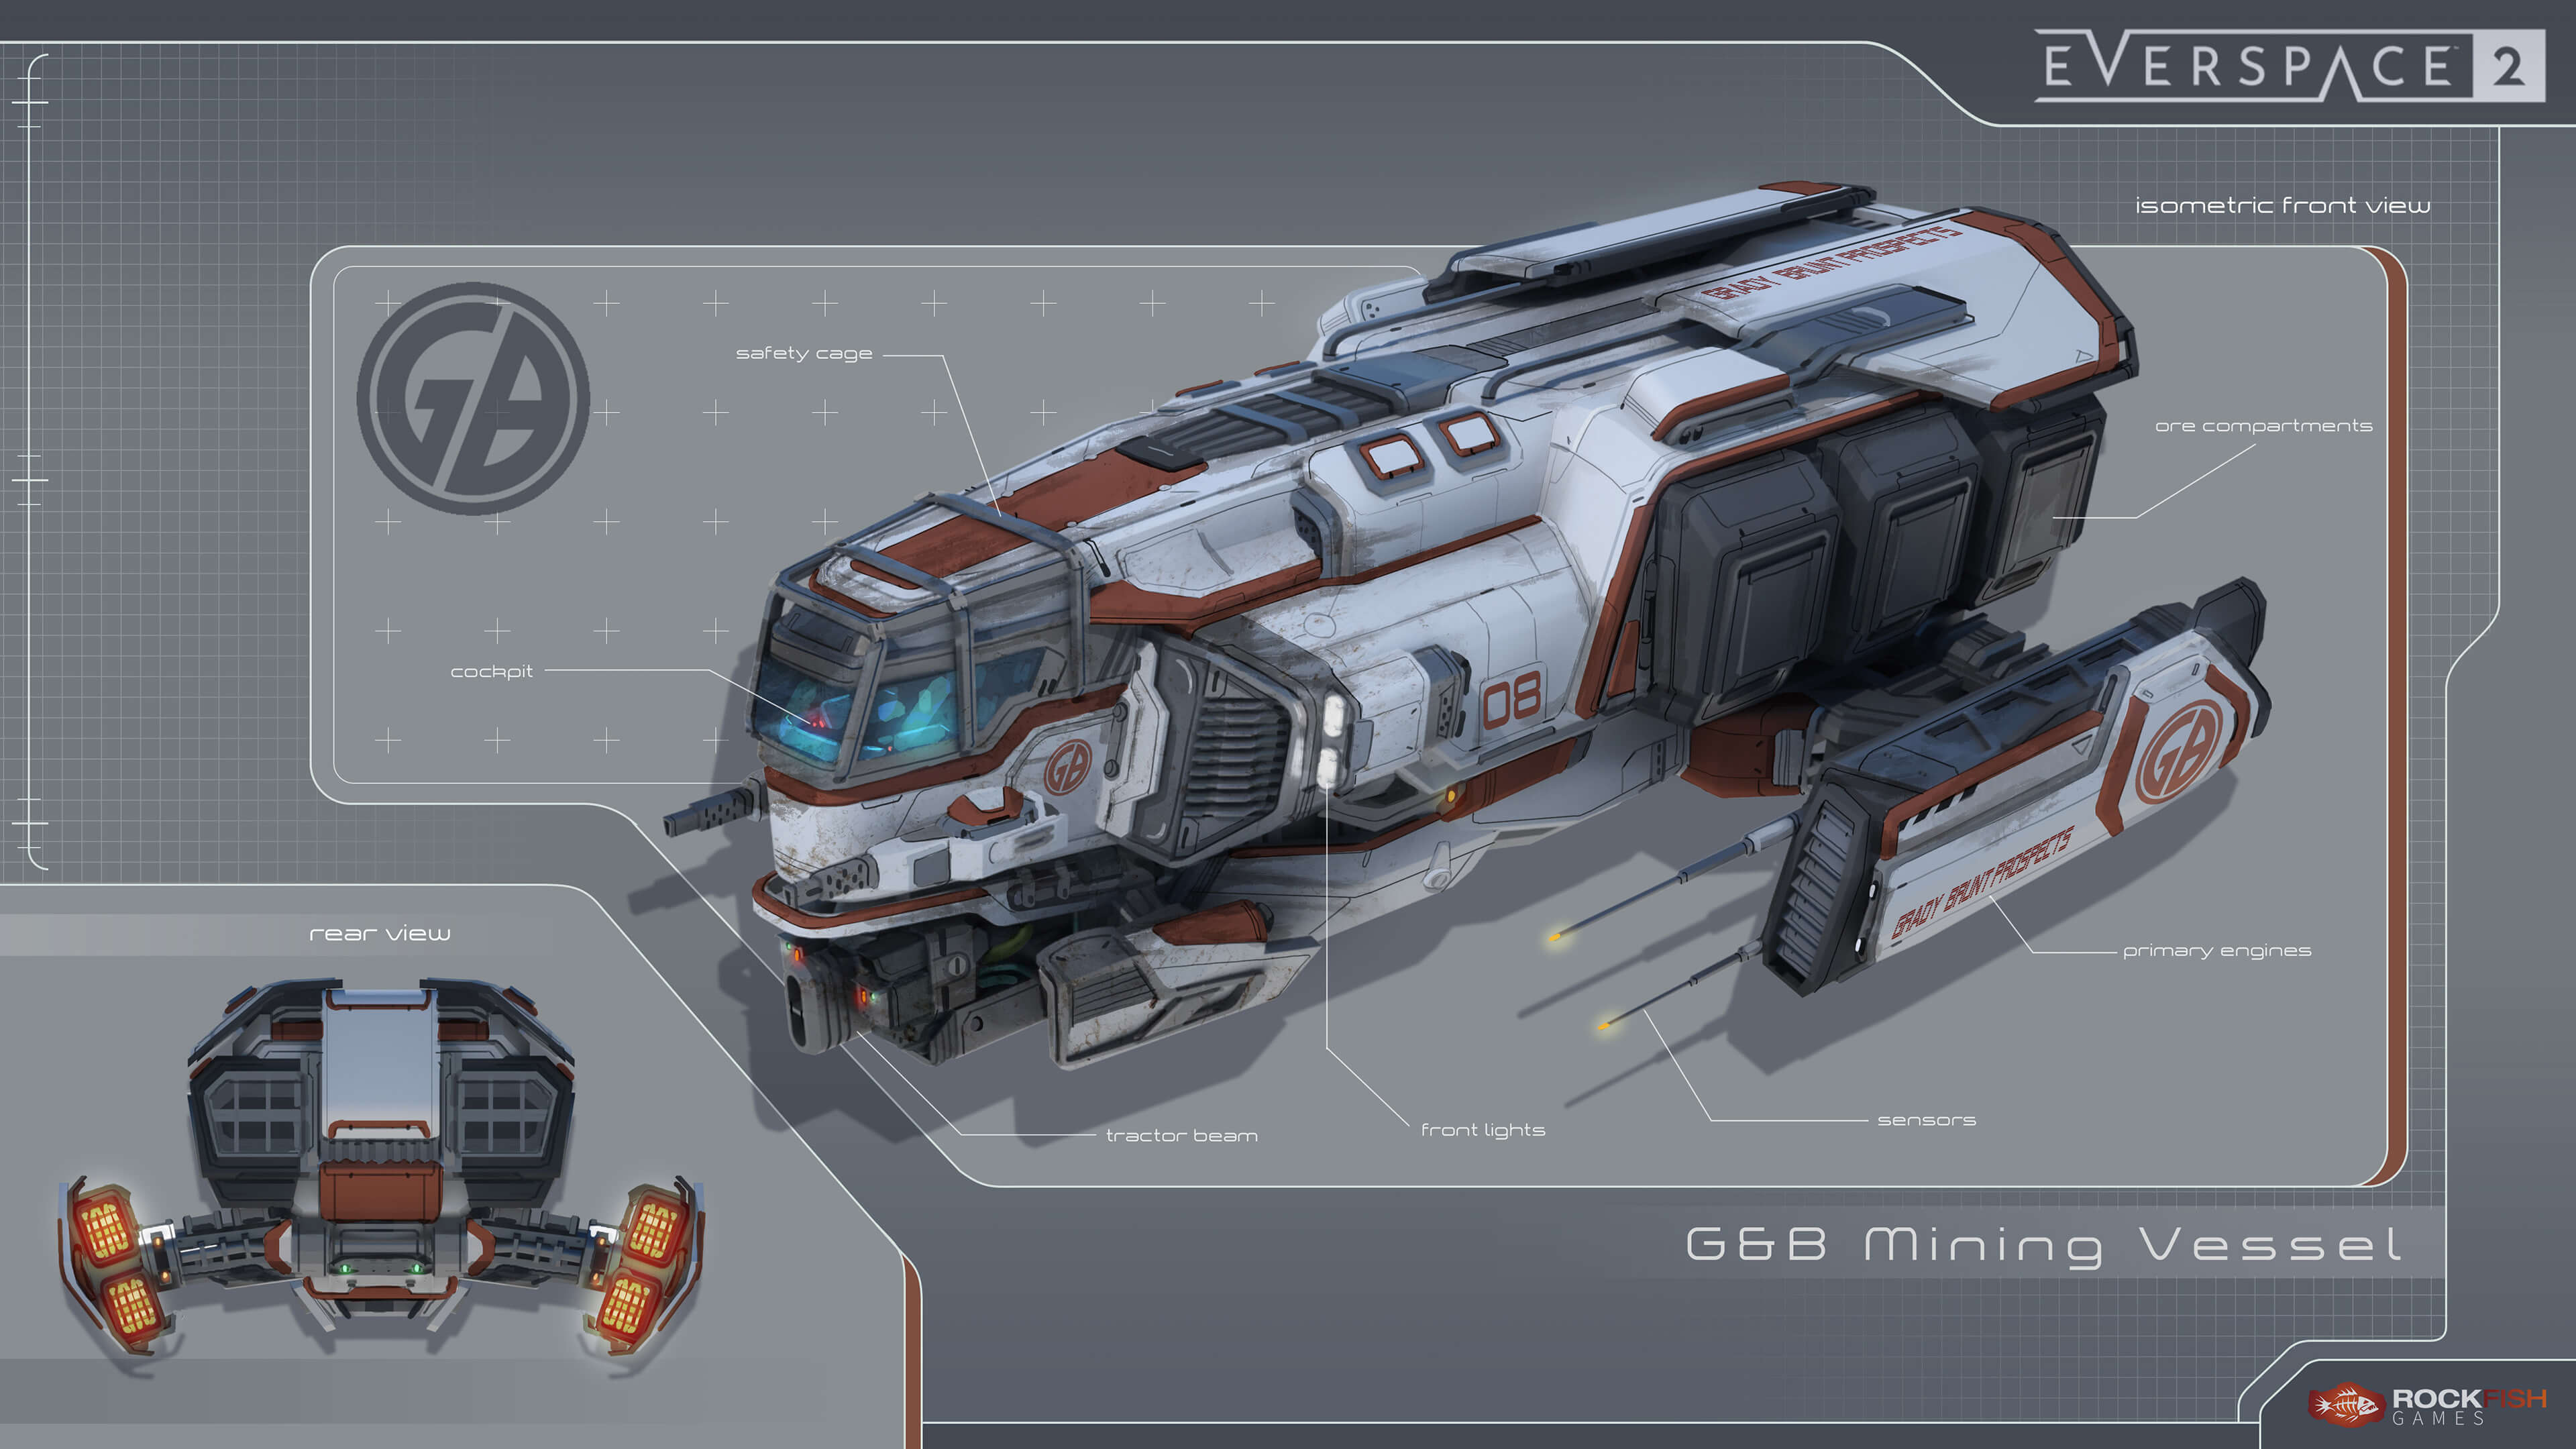 grady and brunt everspace 2 mining vessel